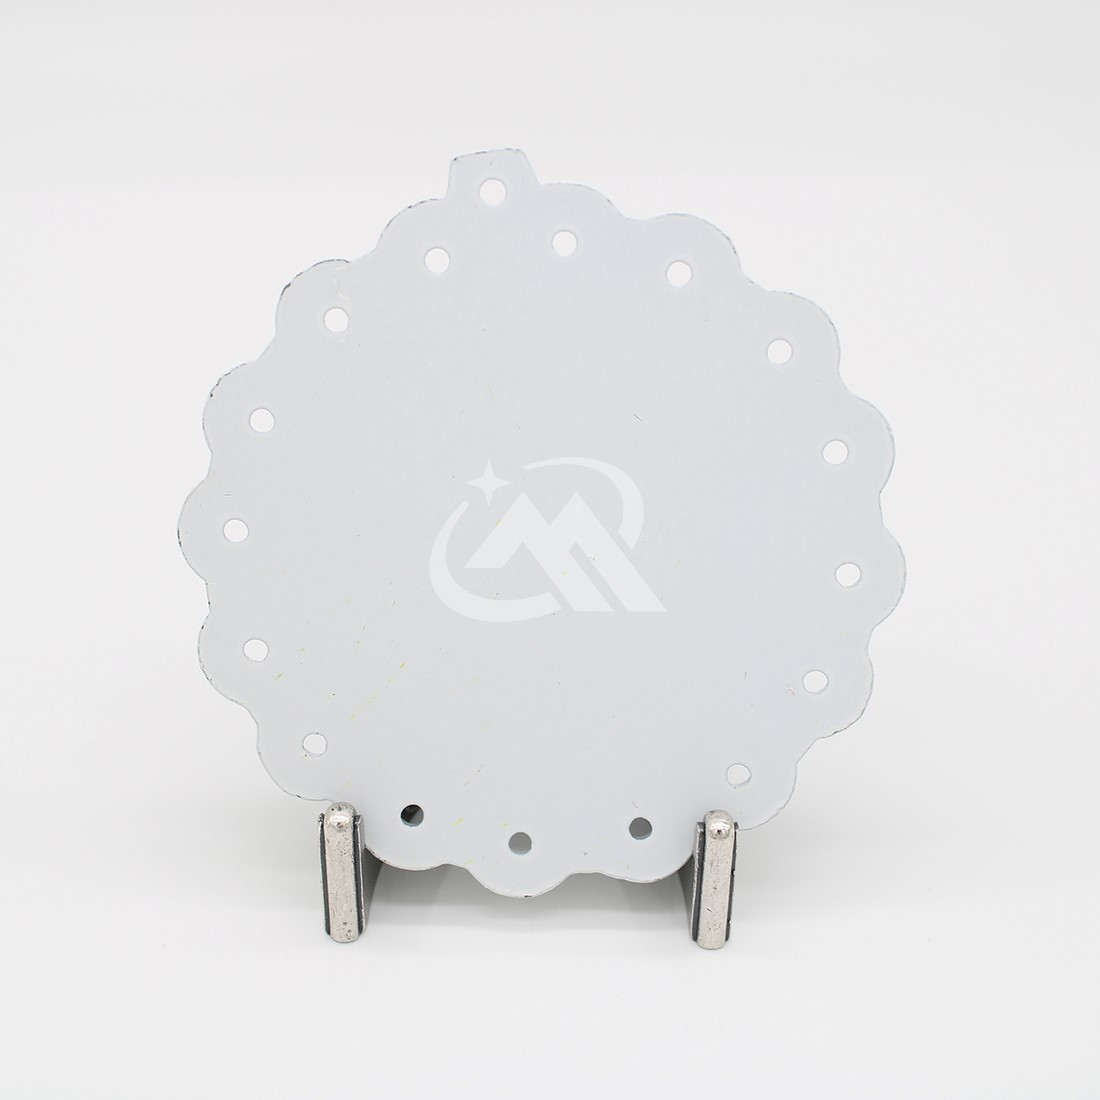 Custom Cycling Medals with Spray paint white color